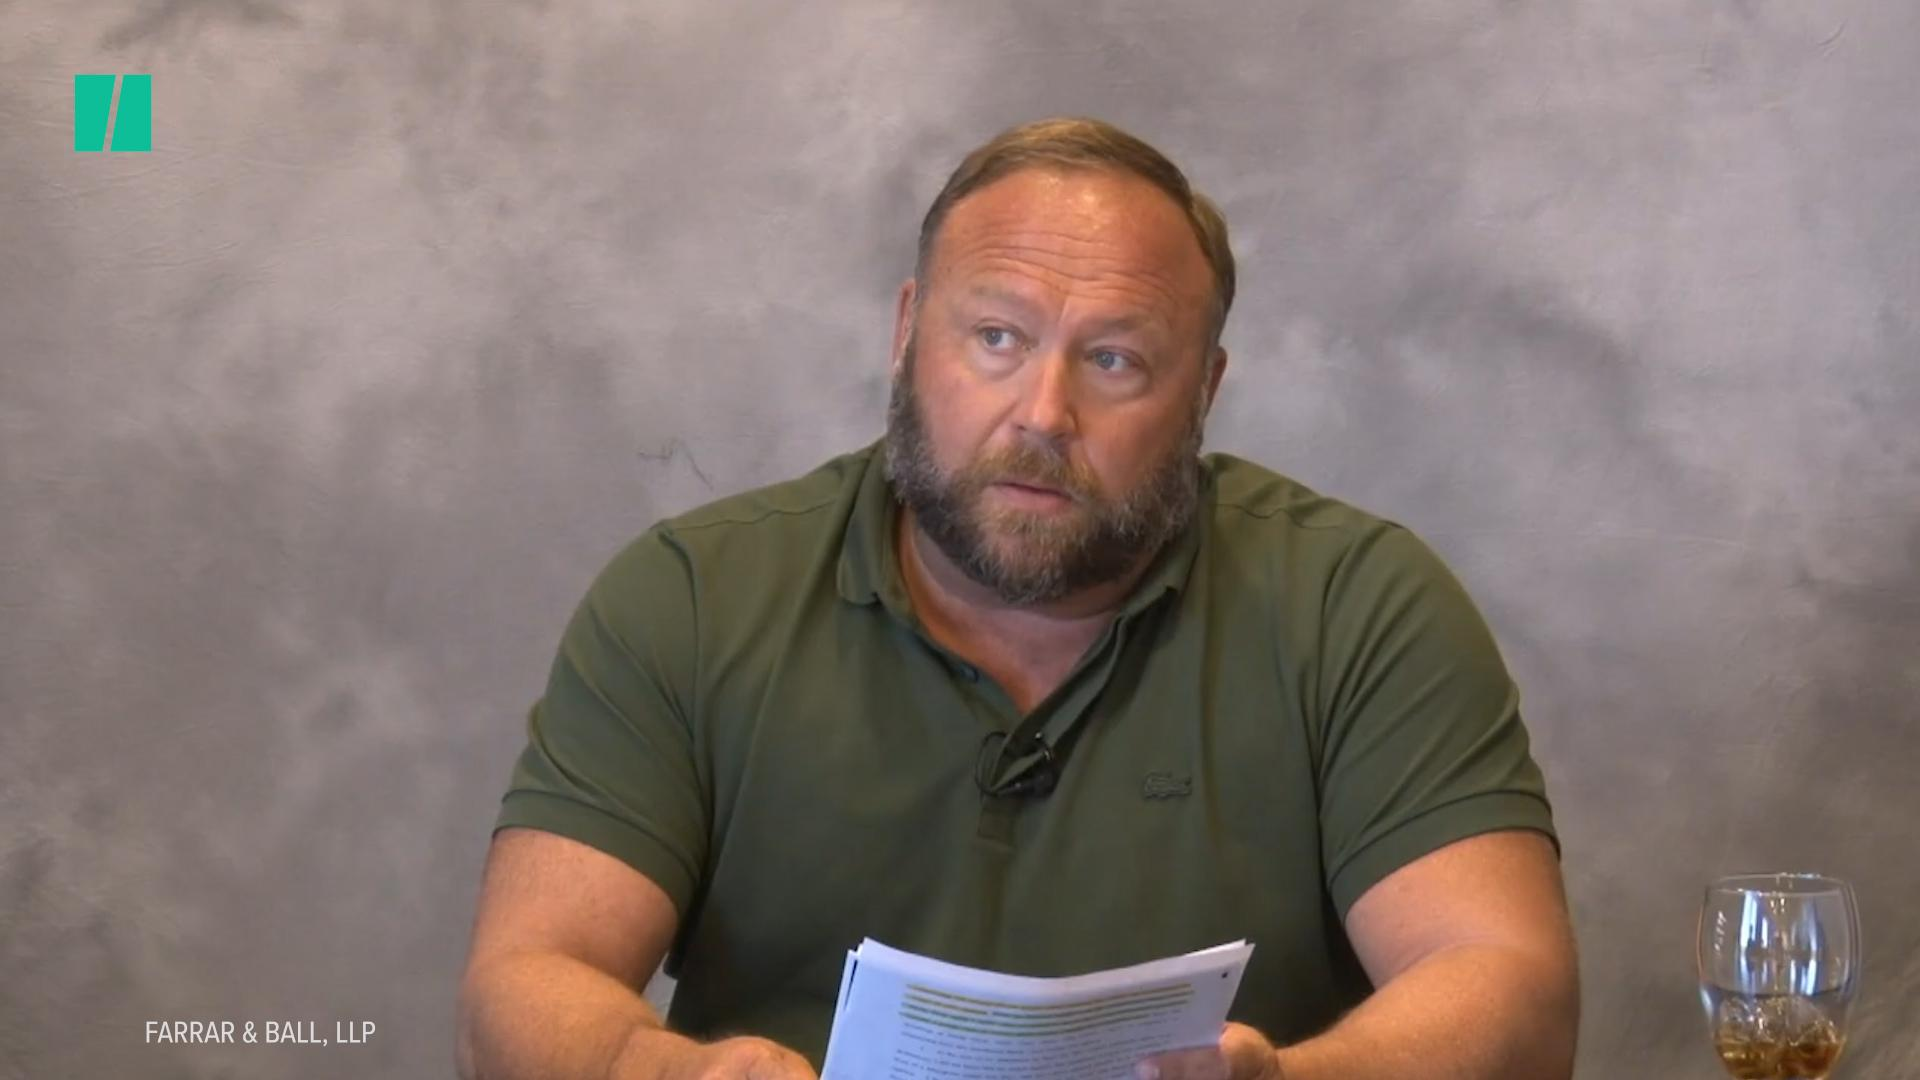 Former Infowars Editor Says Staff Laughed When He Asked Not To Lie About Sandy Hook